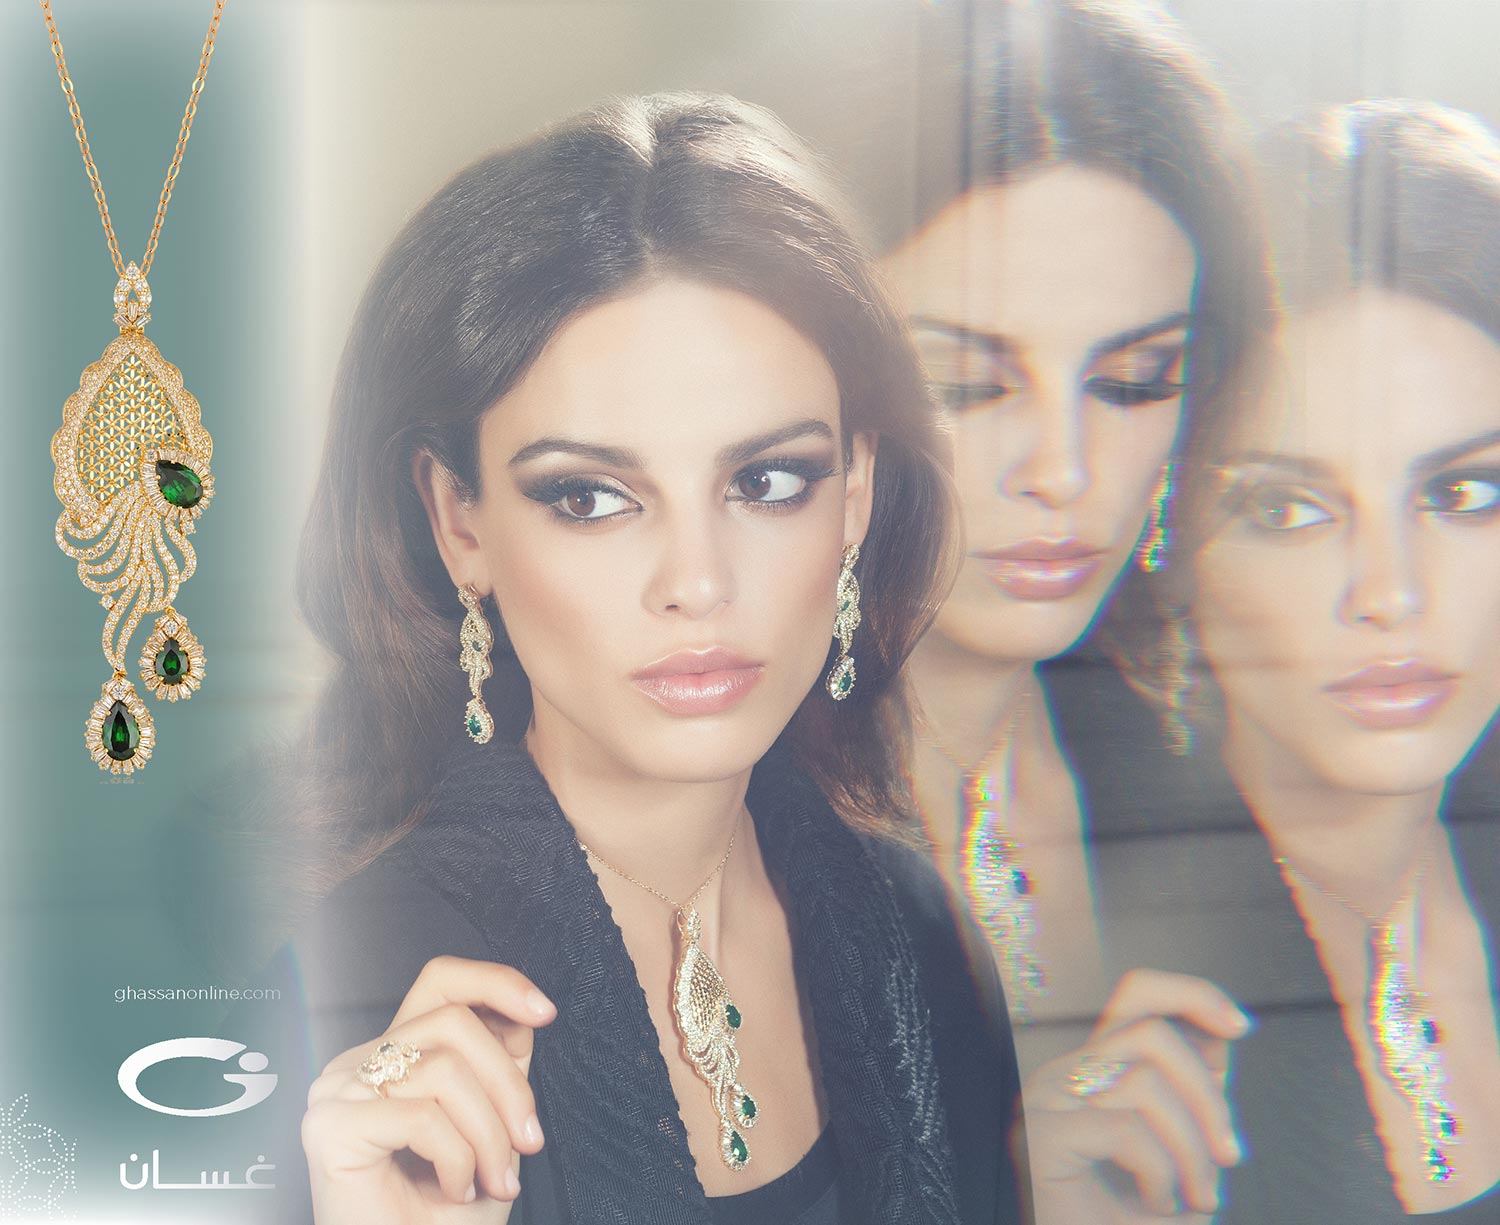 Ghassan Jewellery